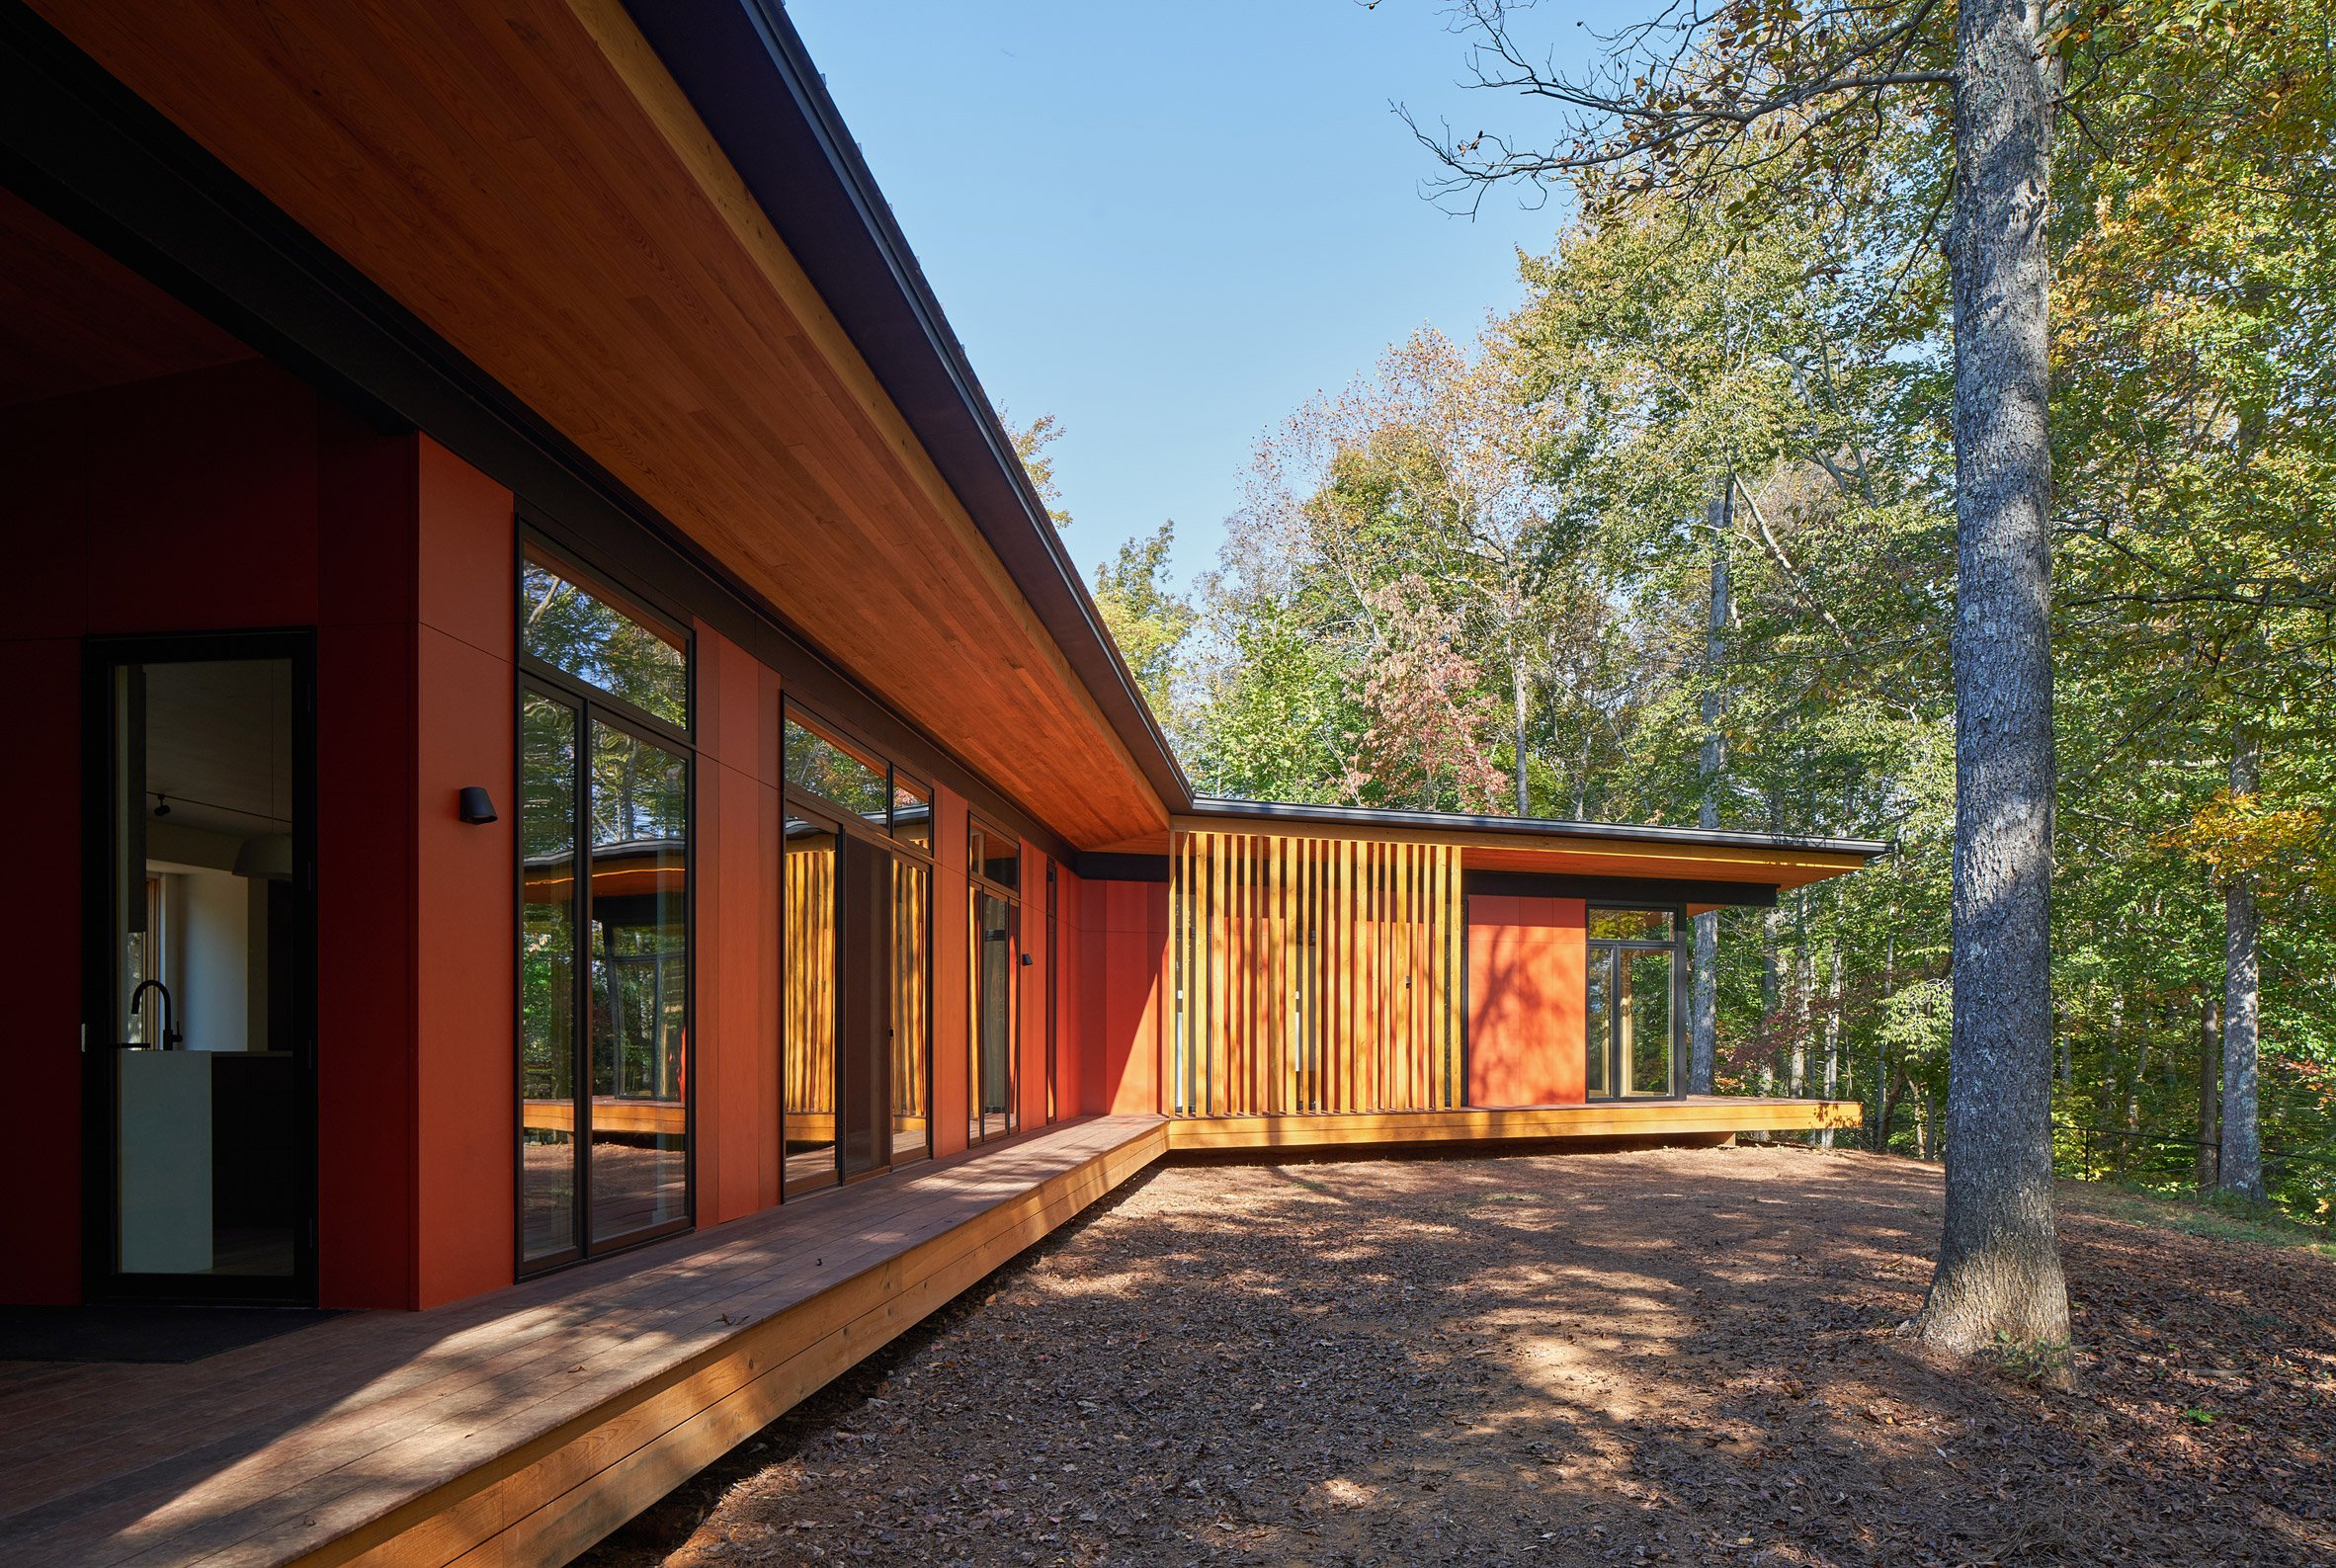 Stained cypress wood on exterior of house in the woods